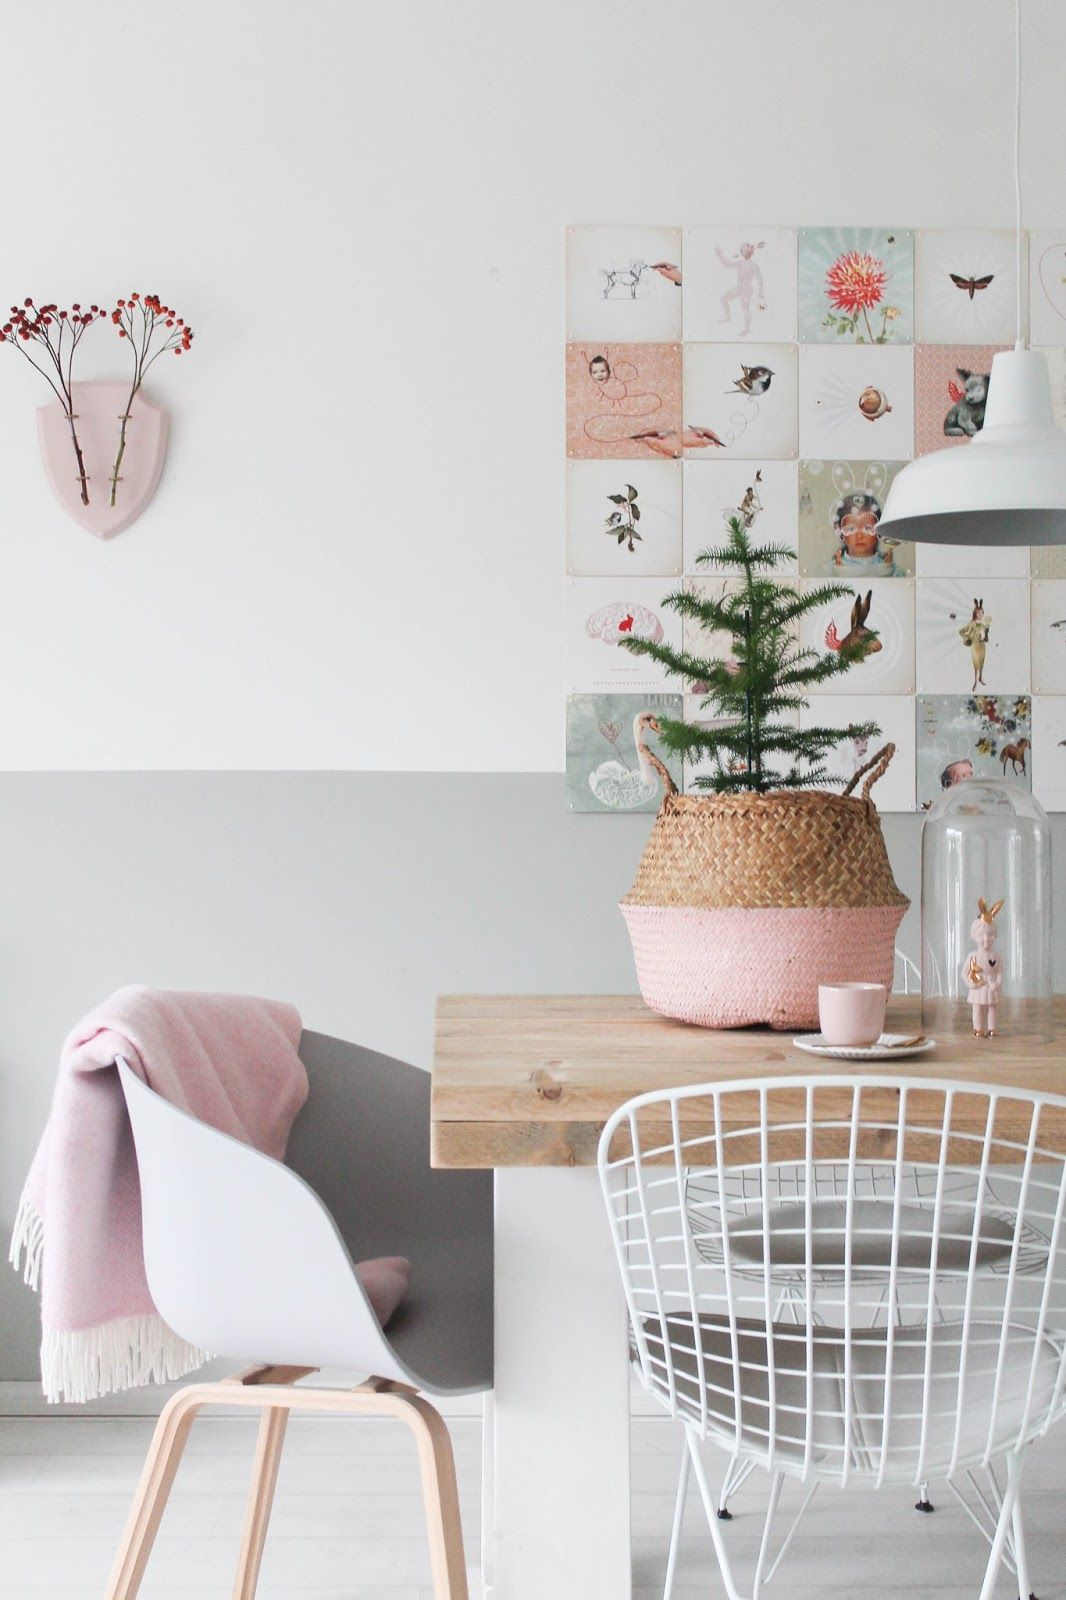 Blog over interieur en fotografie. Scandinavisch wonen. | home ...